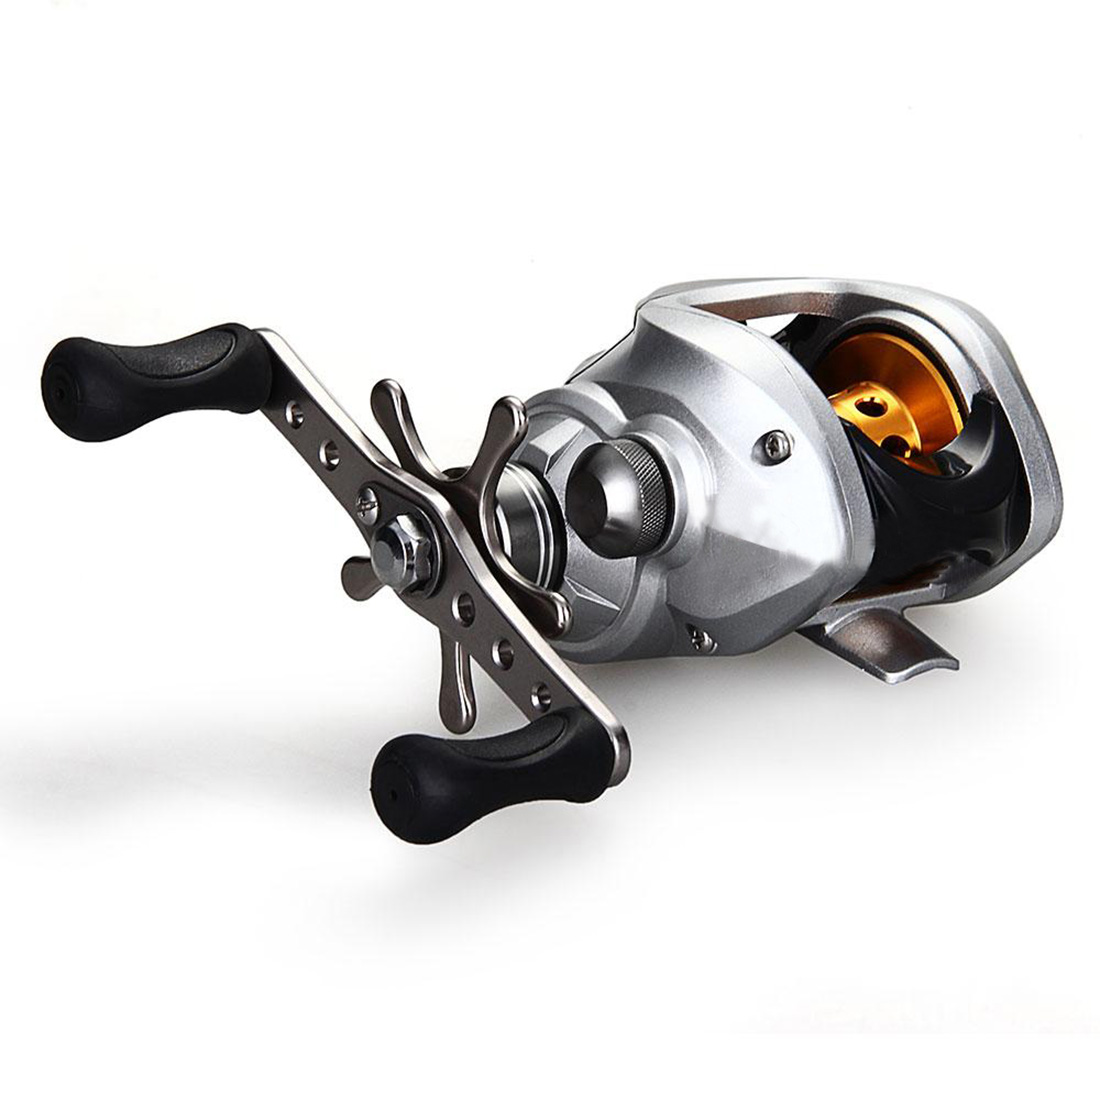 Hot Sale High Quality Metal Plastic Baitcast Baitcasting 9+1BB Bearing pesca Reel Handed Silver Handle